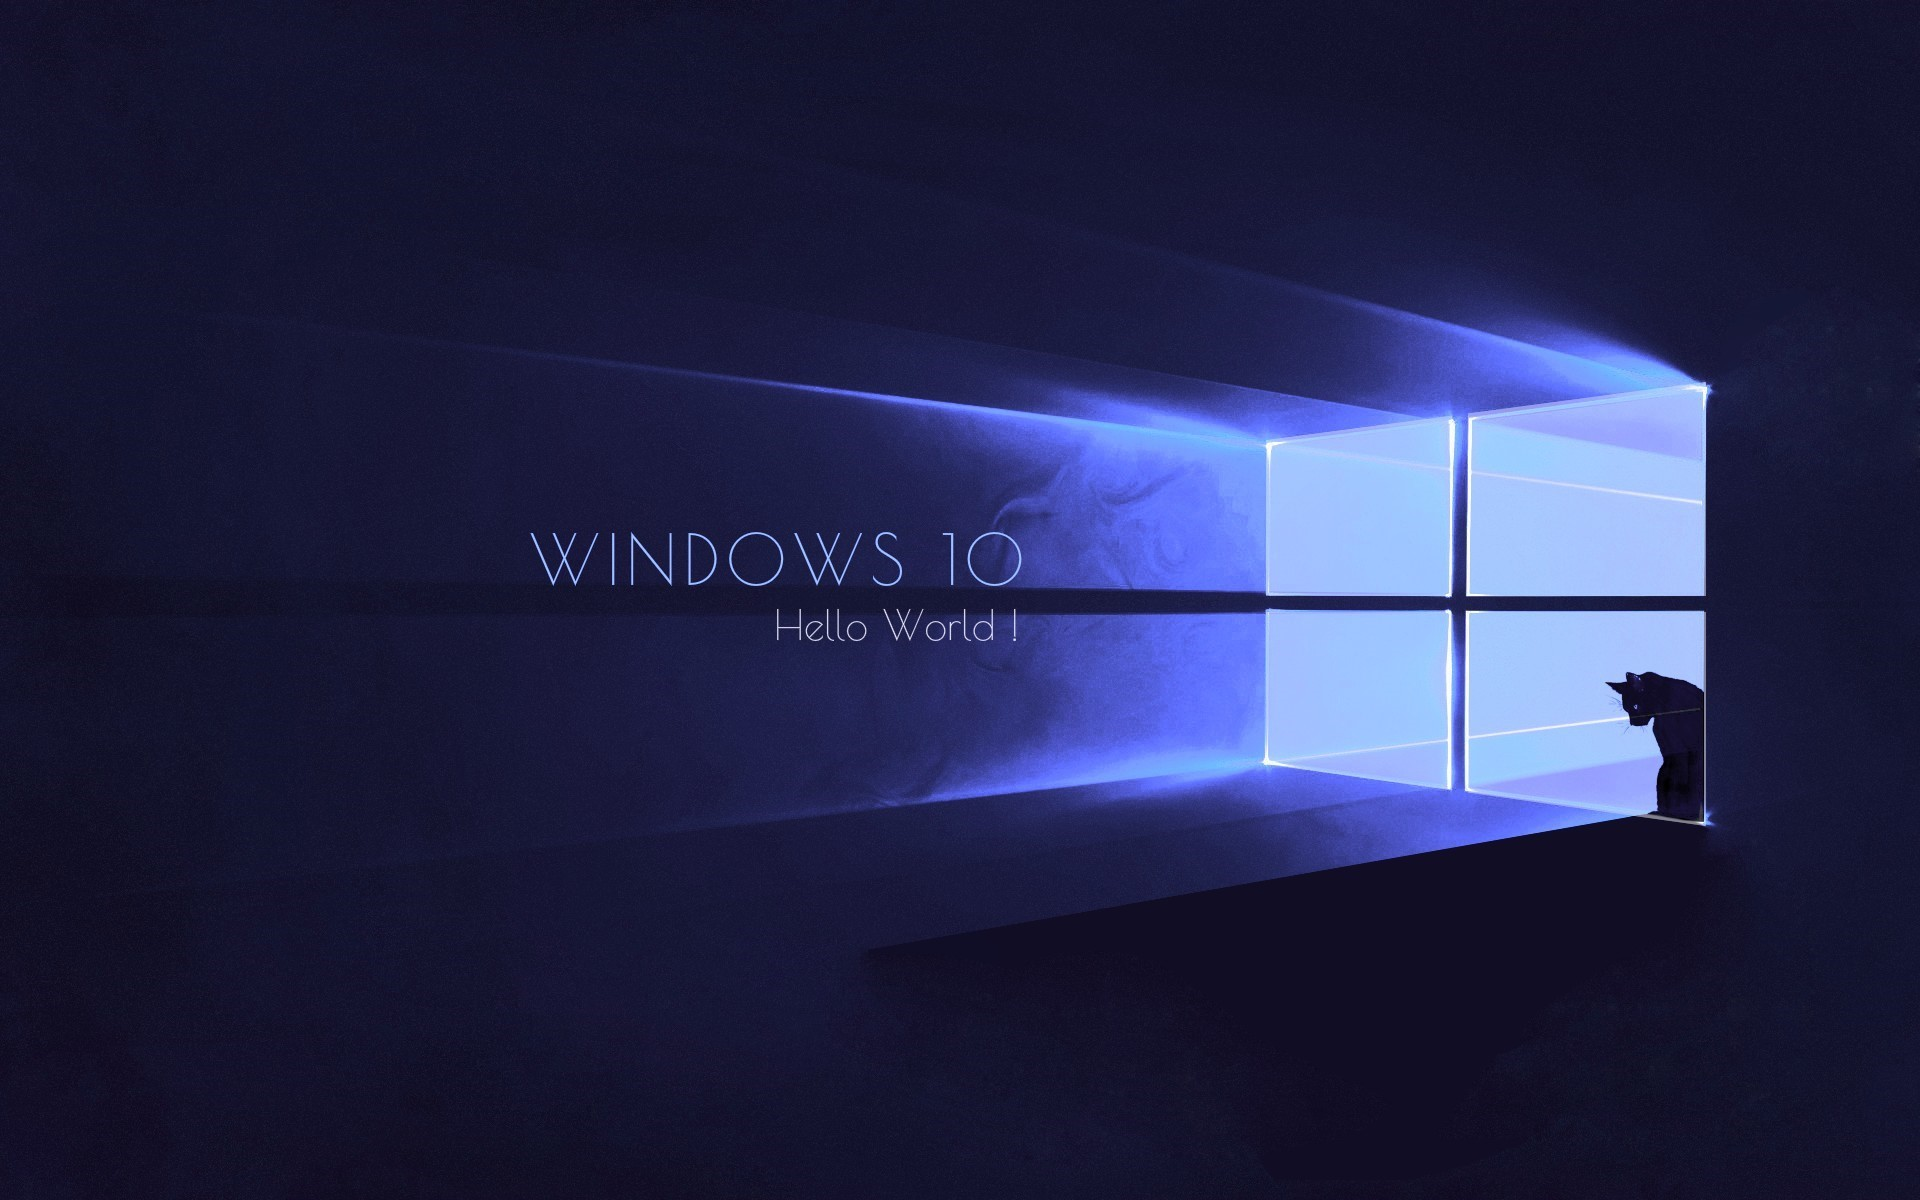 1920x1200 Wide wallpapers Windows 10